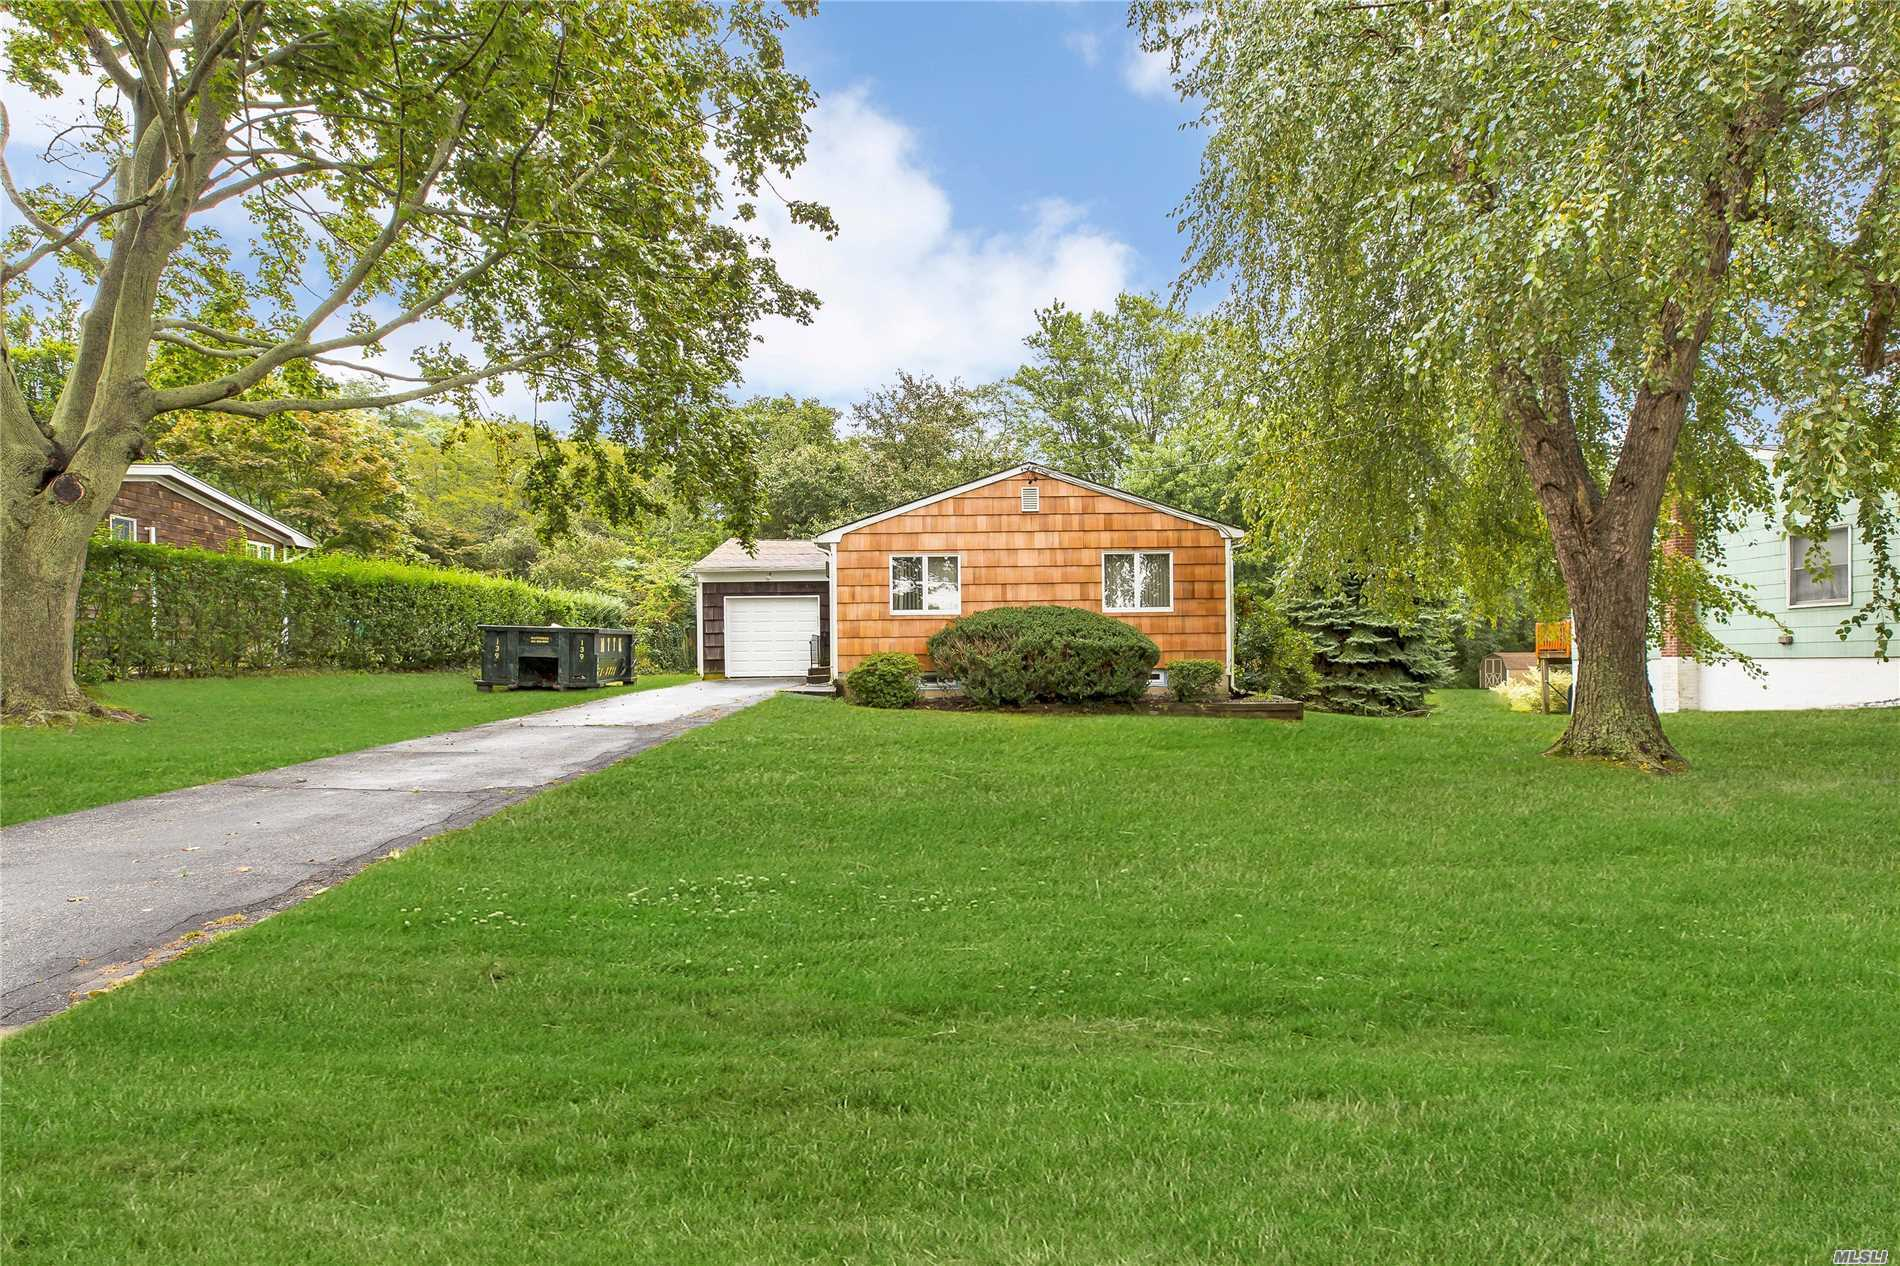 2865 S Harbor Rd - Southold, New York